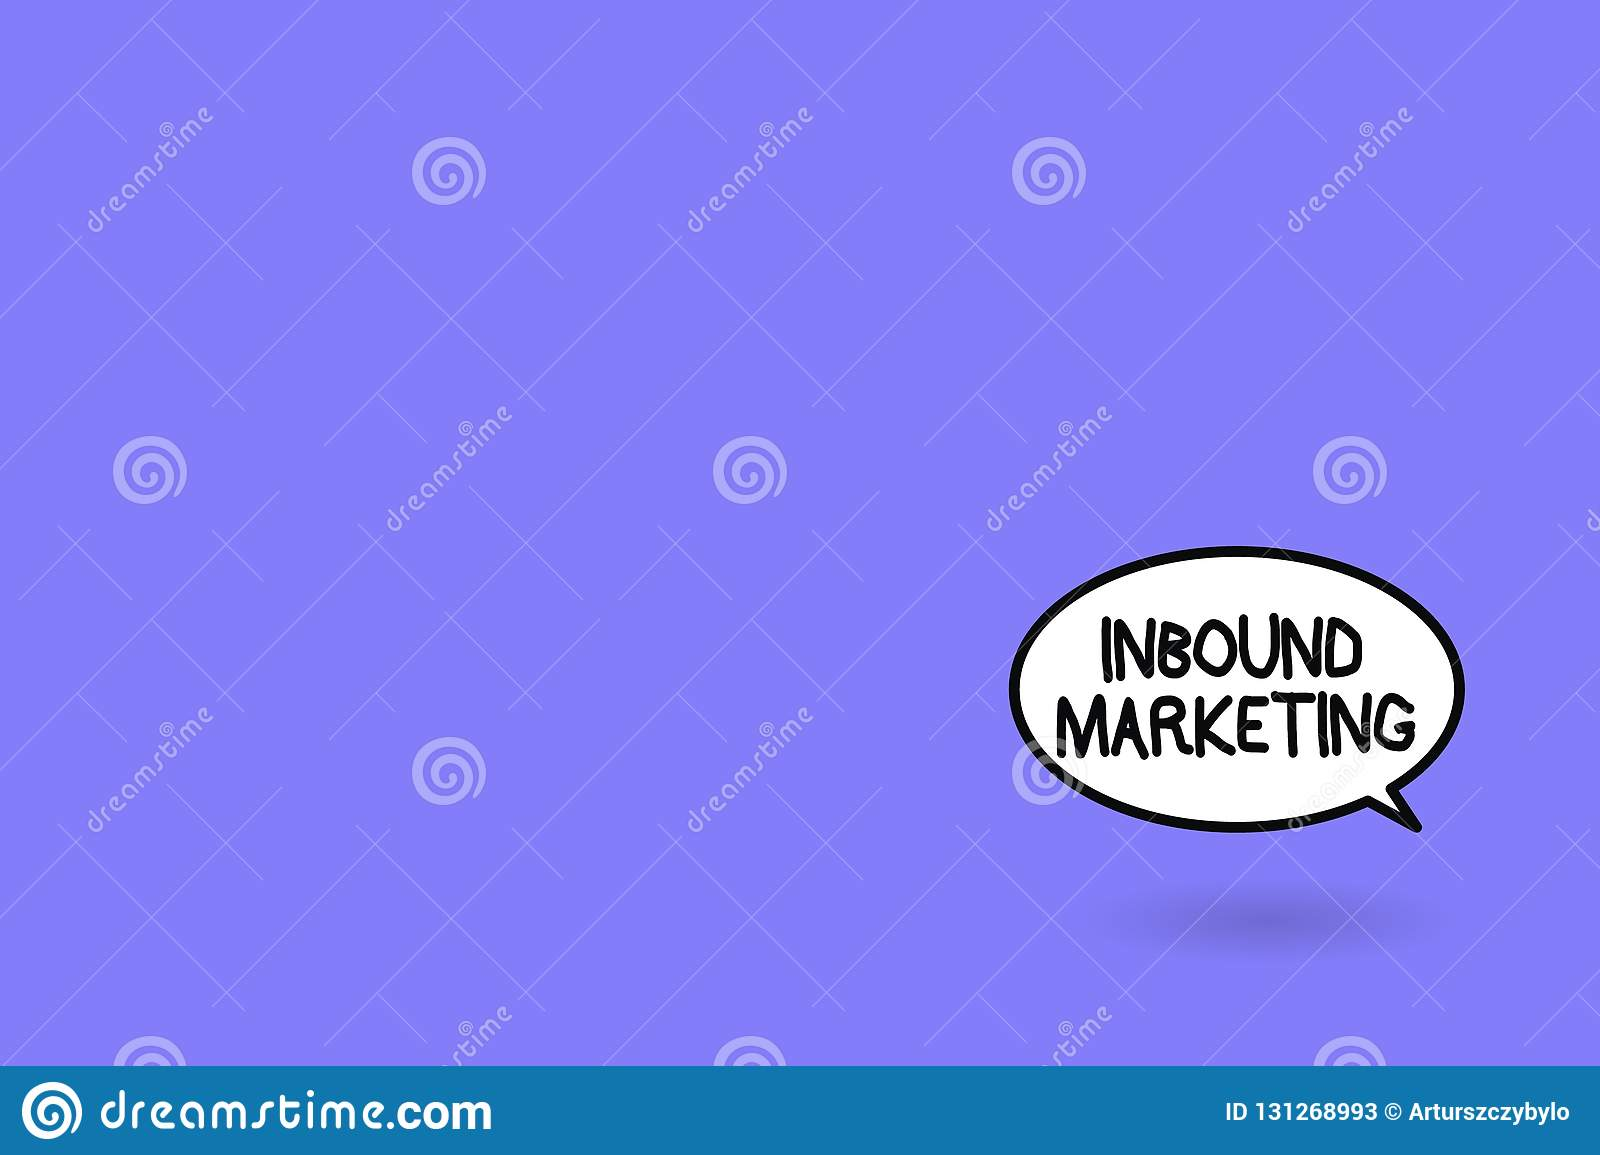 concept and process of marketing